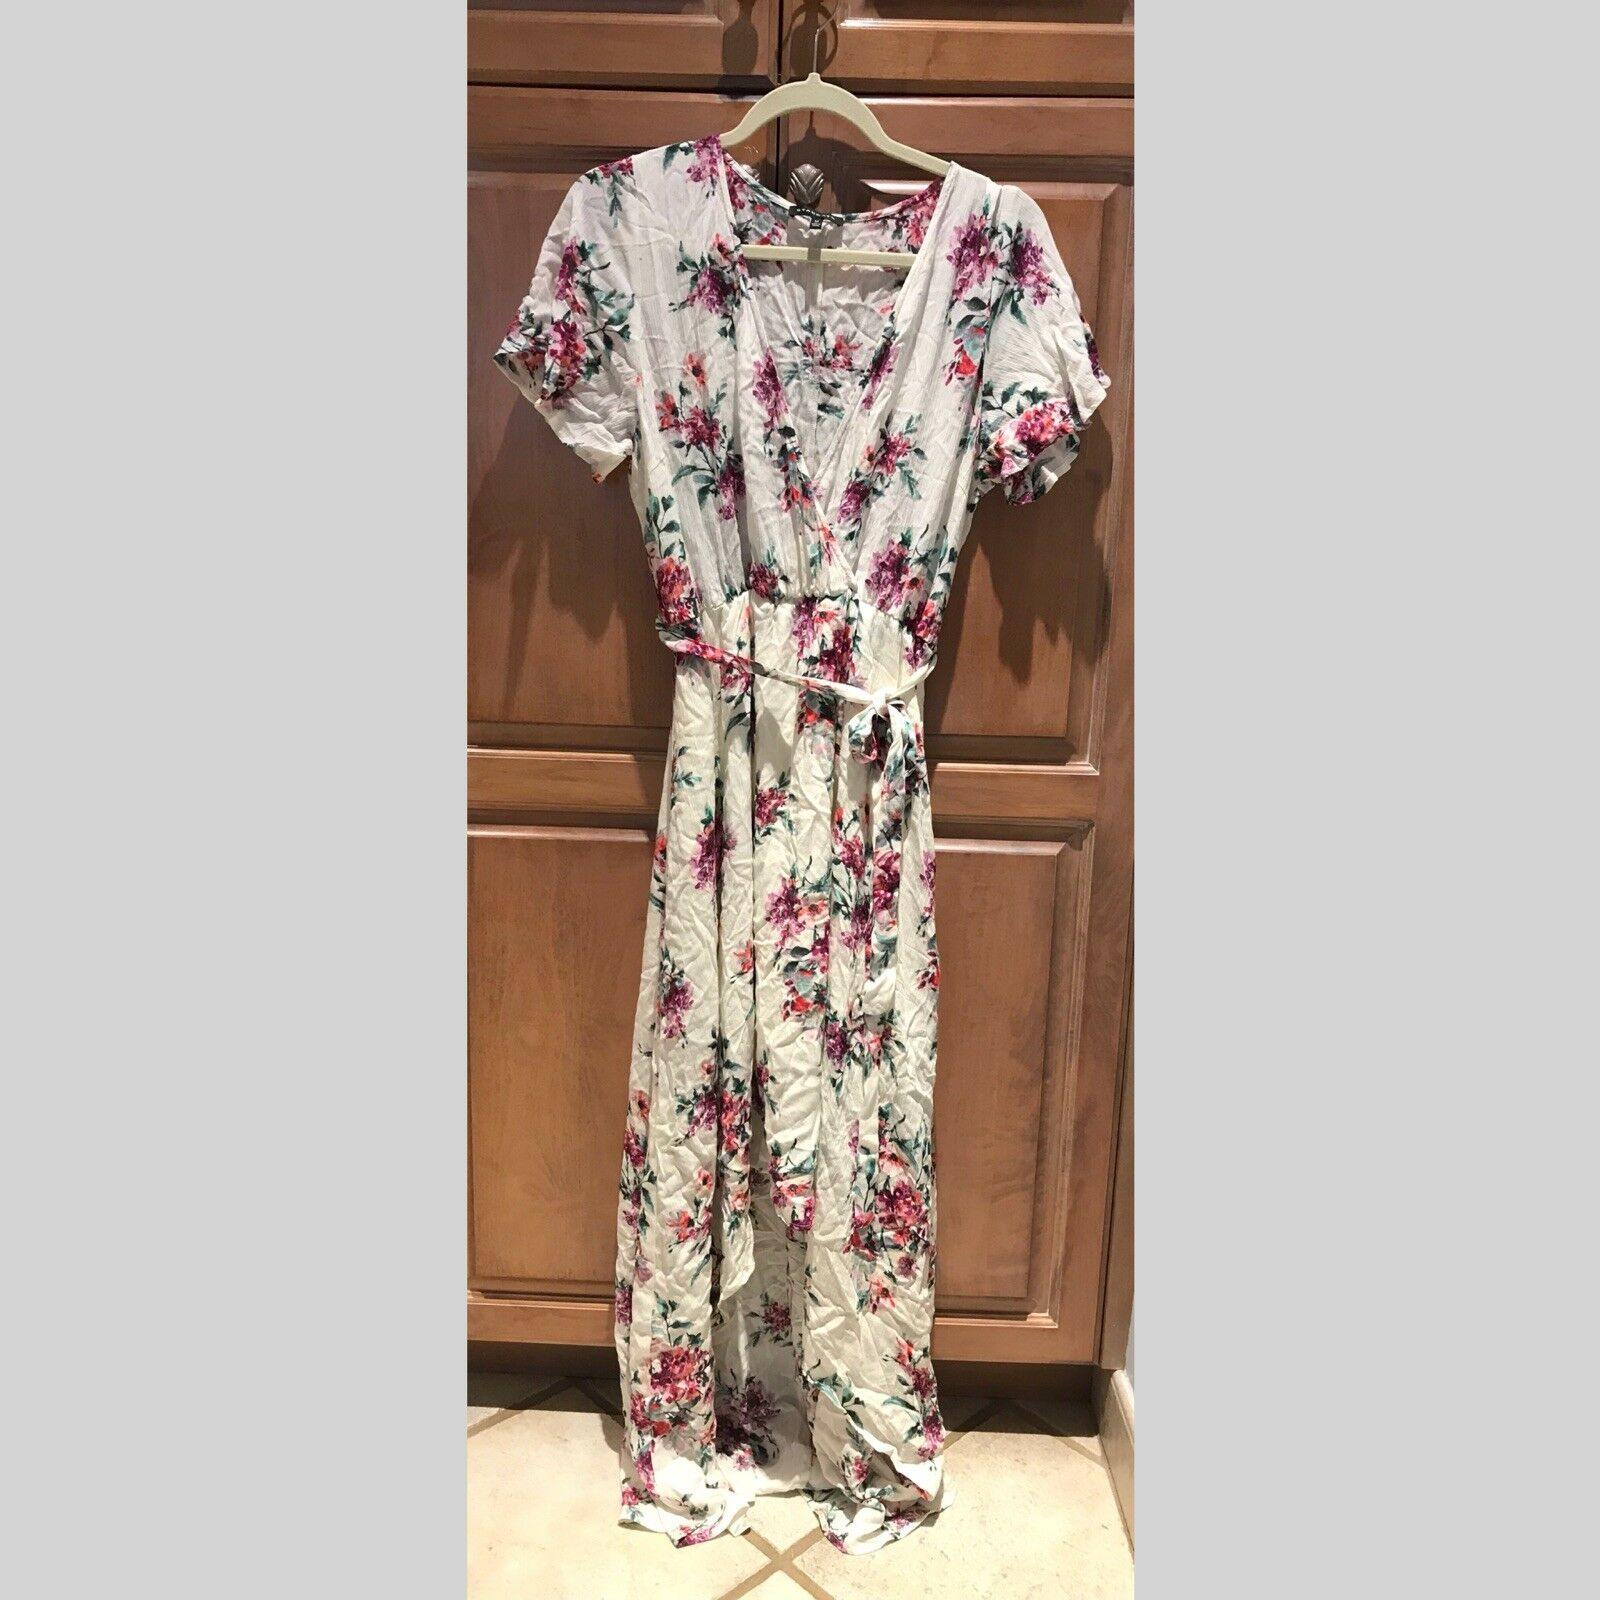 Staccato Floral Tie Waist High Low Dress Size M